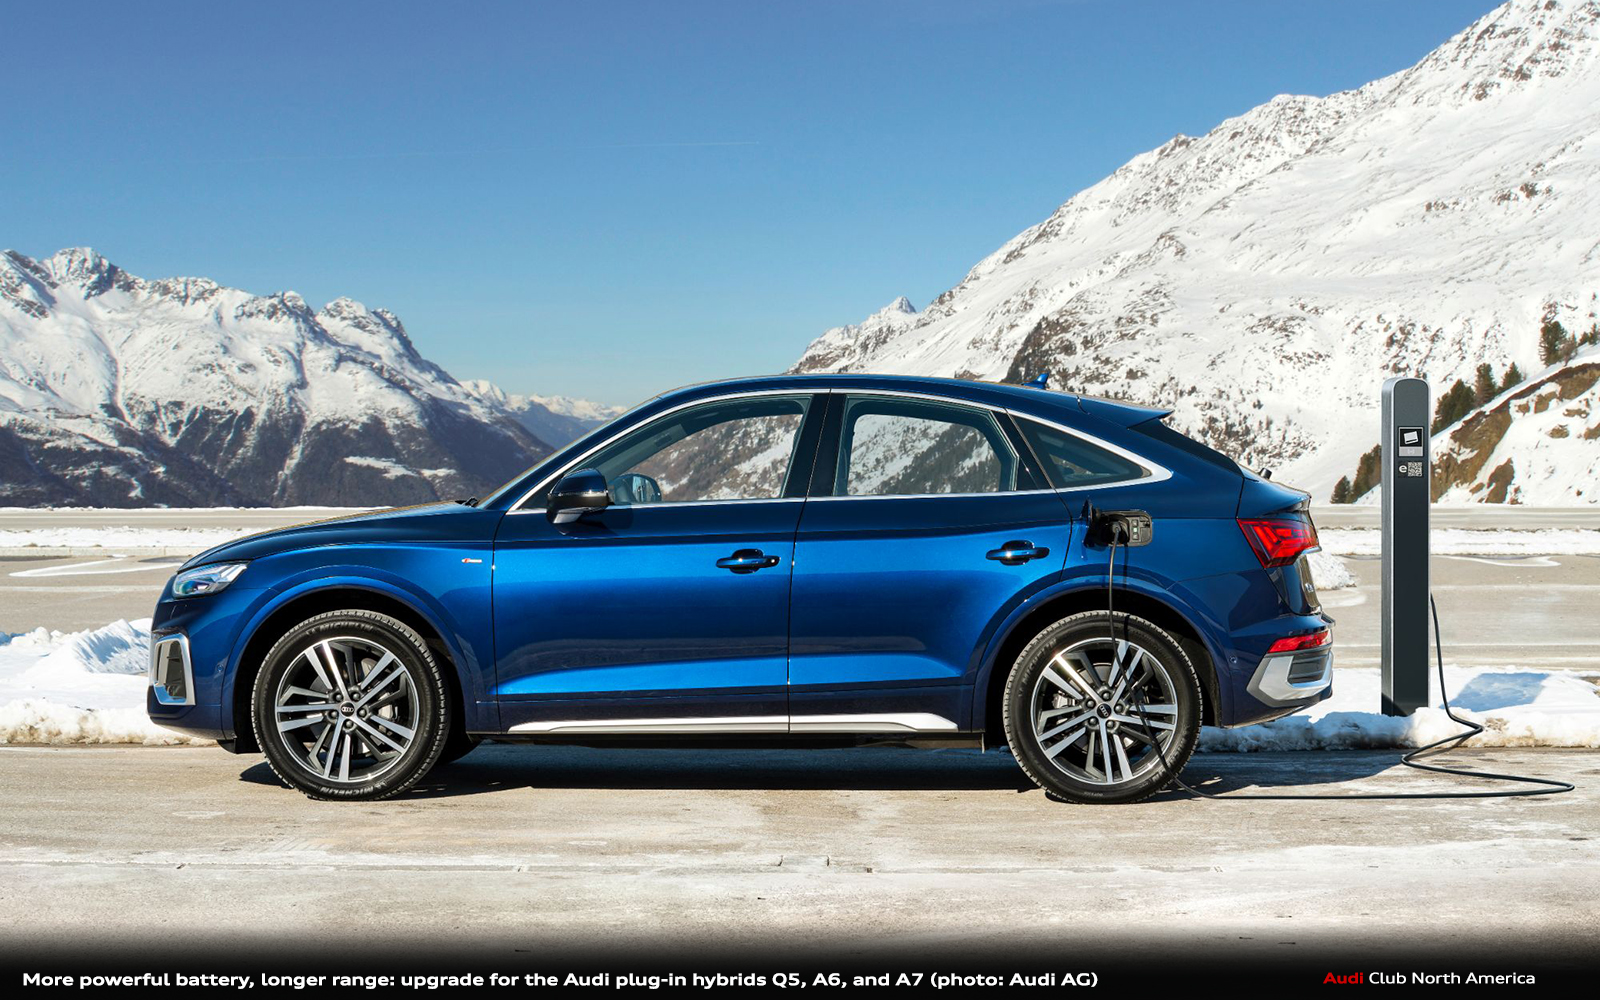 More Powerful Battery, Longer Range: Upgrade for the Audi Plug-In Hybrids Q5, A6, and A7